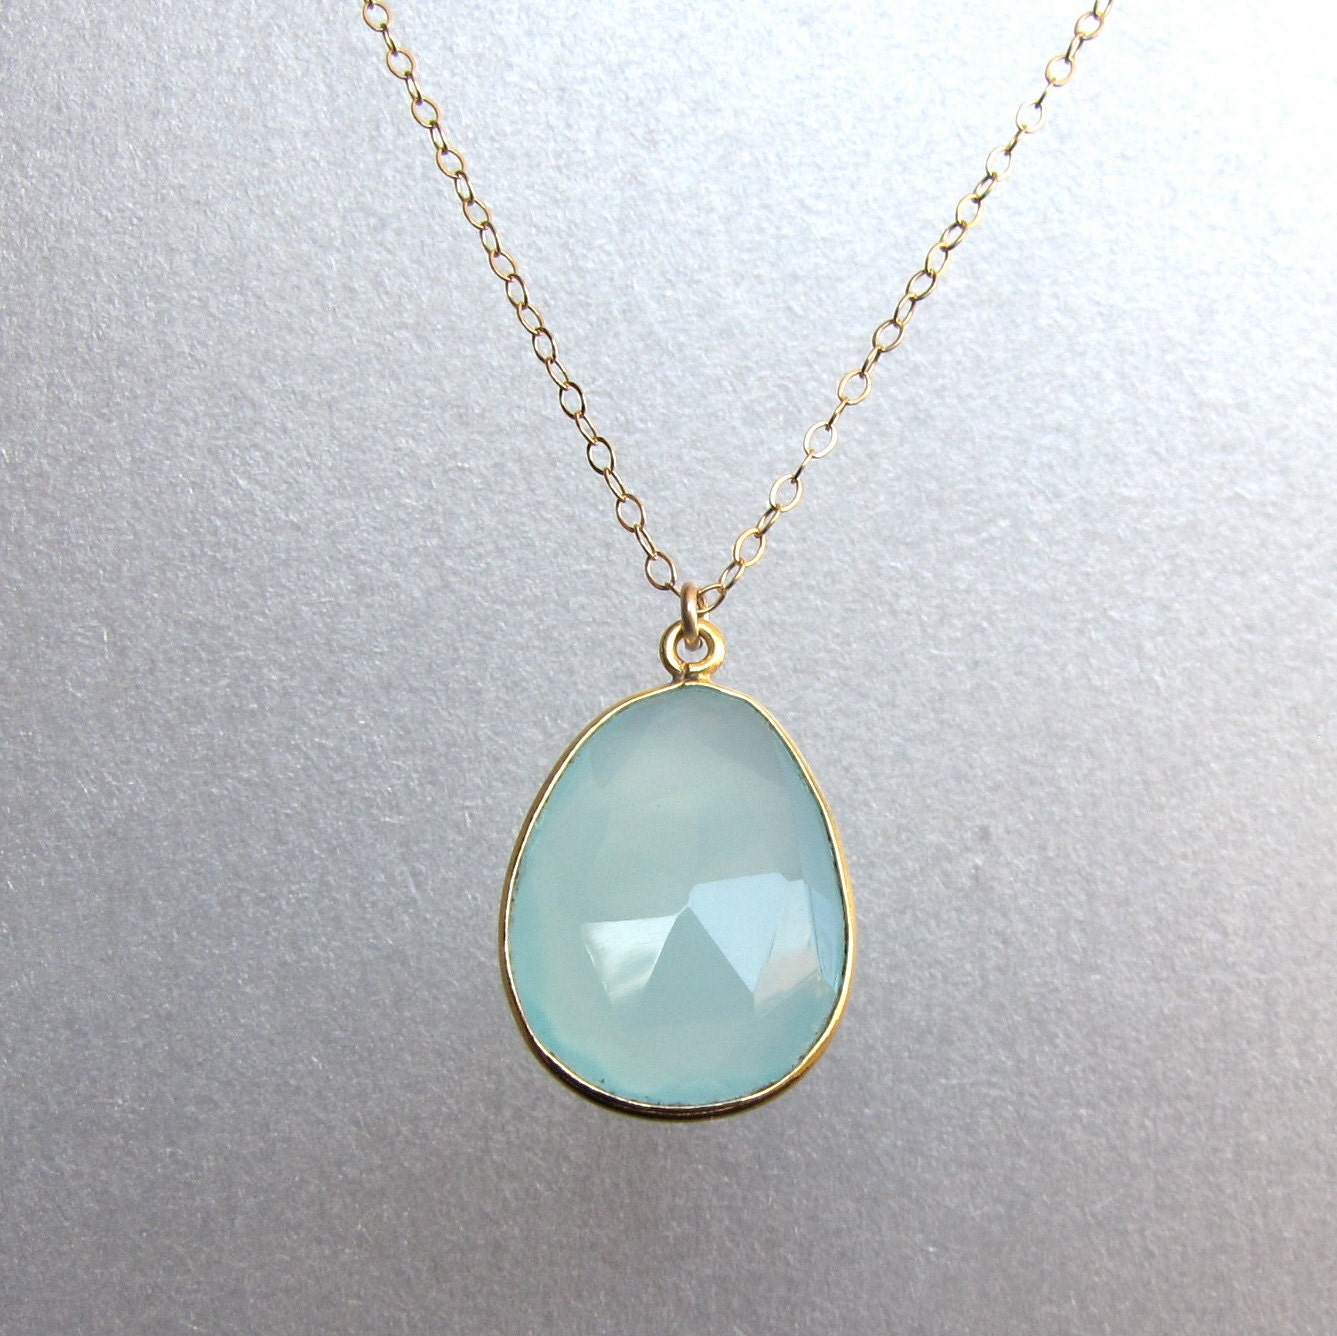 sea foam chalcedony pendant necklace